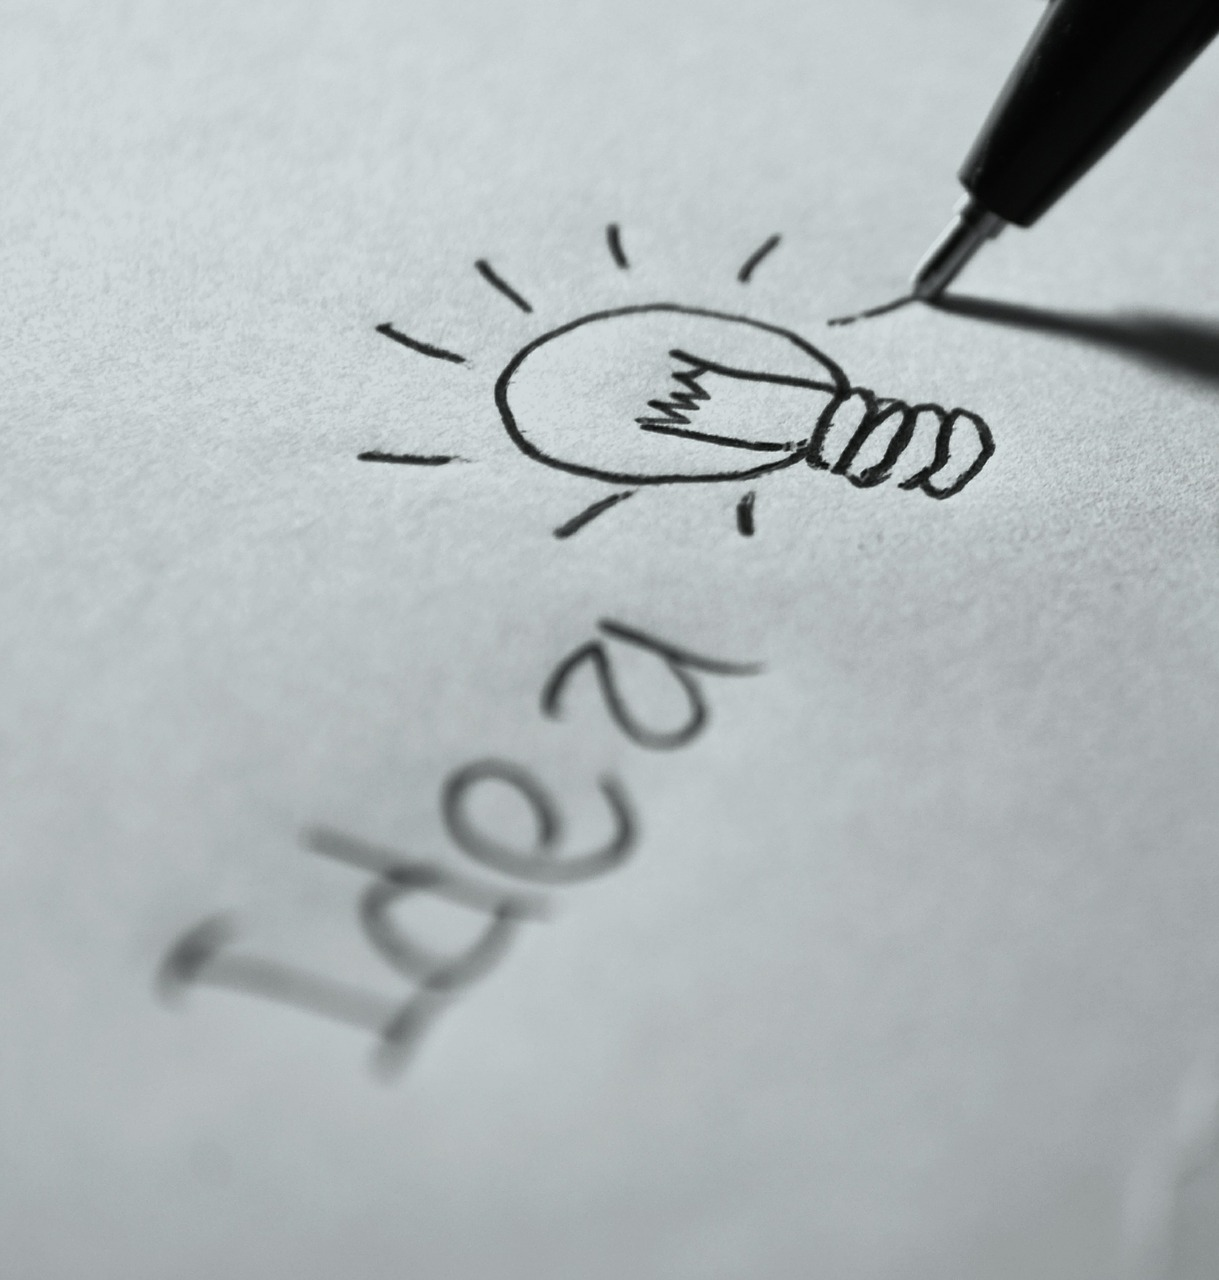 Top 10 Tips For Finding Writing Inspiration by Stephanie Norman AKA @NormanNorman777